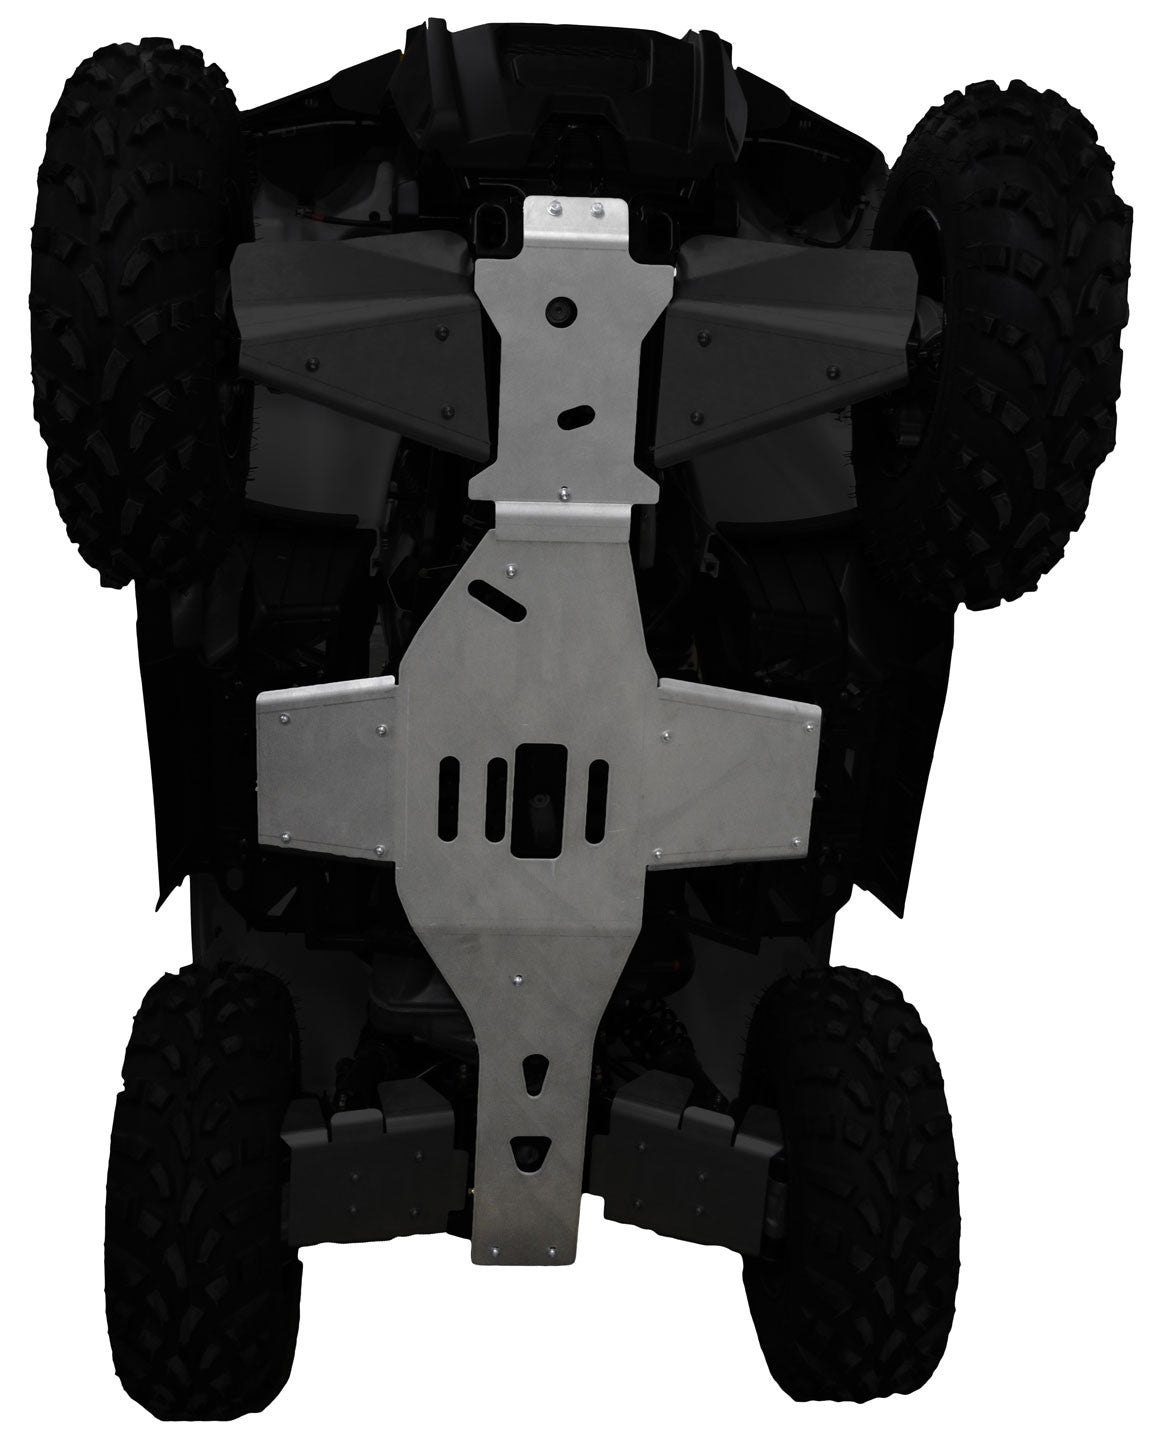 2-Piece Full Frame Skid Plate Set, Polaris Sportsman 570